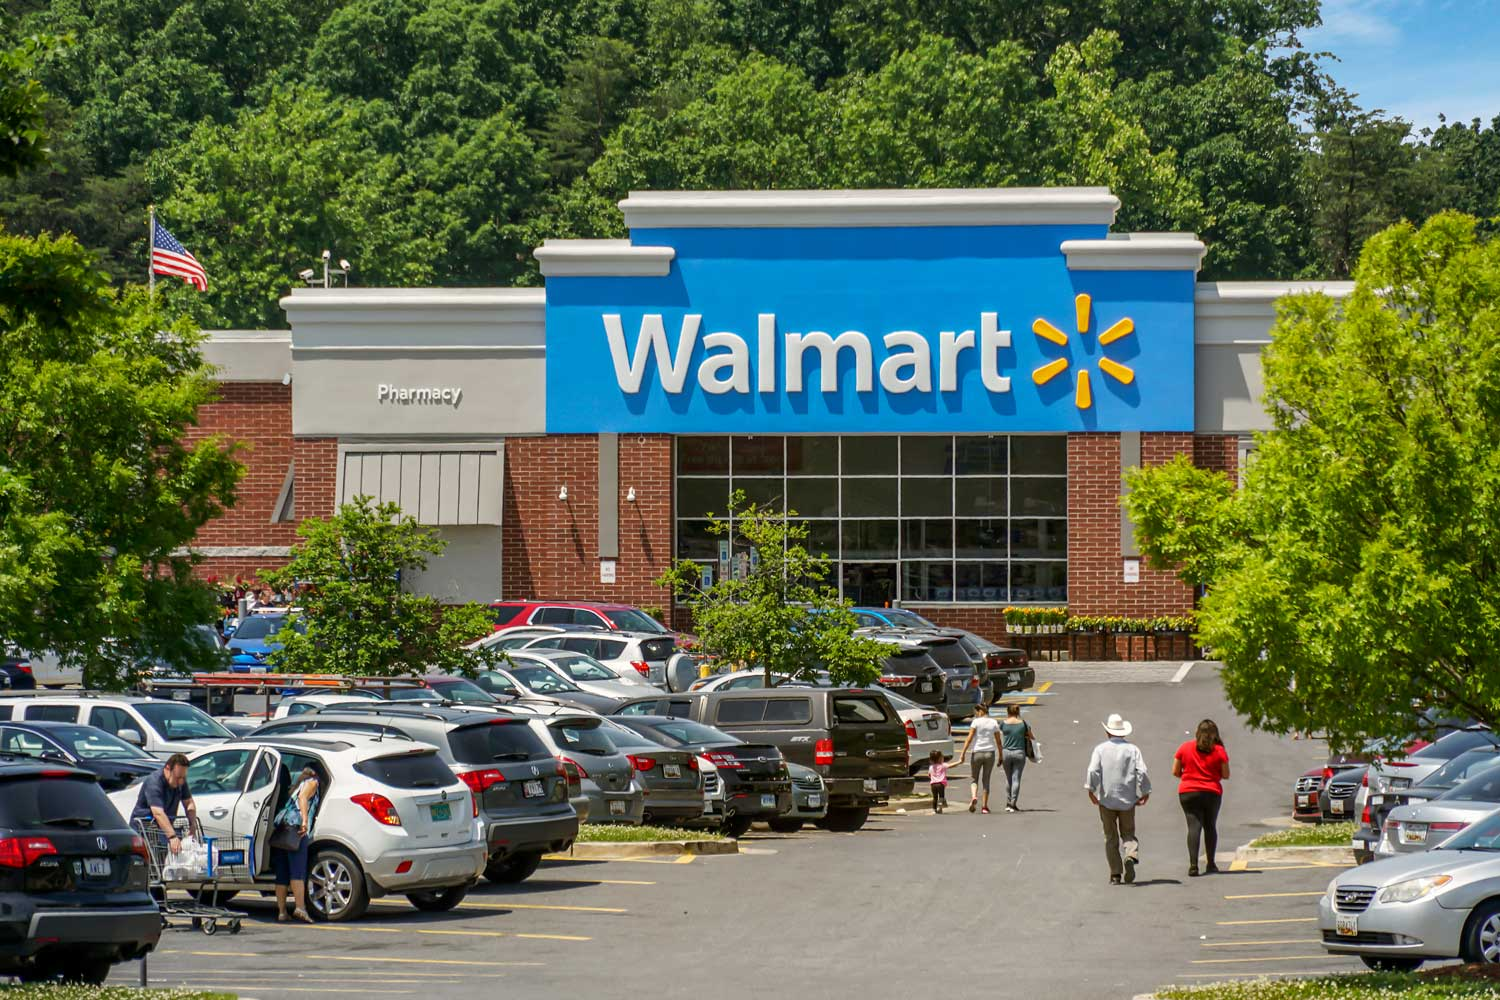 Walmart is 10 minutes from Carrollon Manor Apartments in New Carrollton, MD